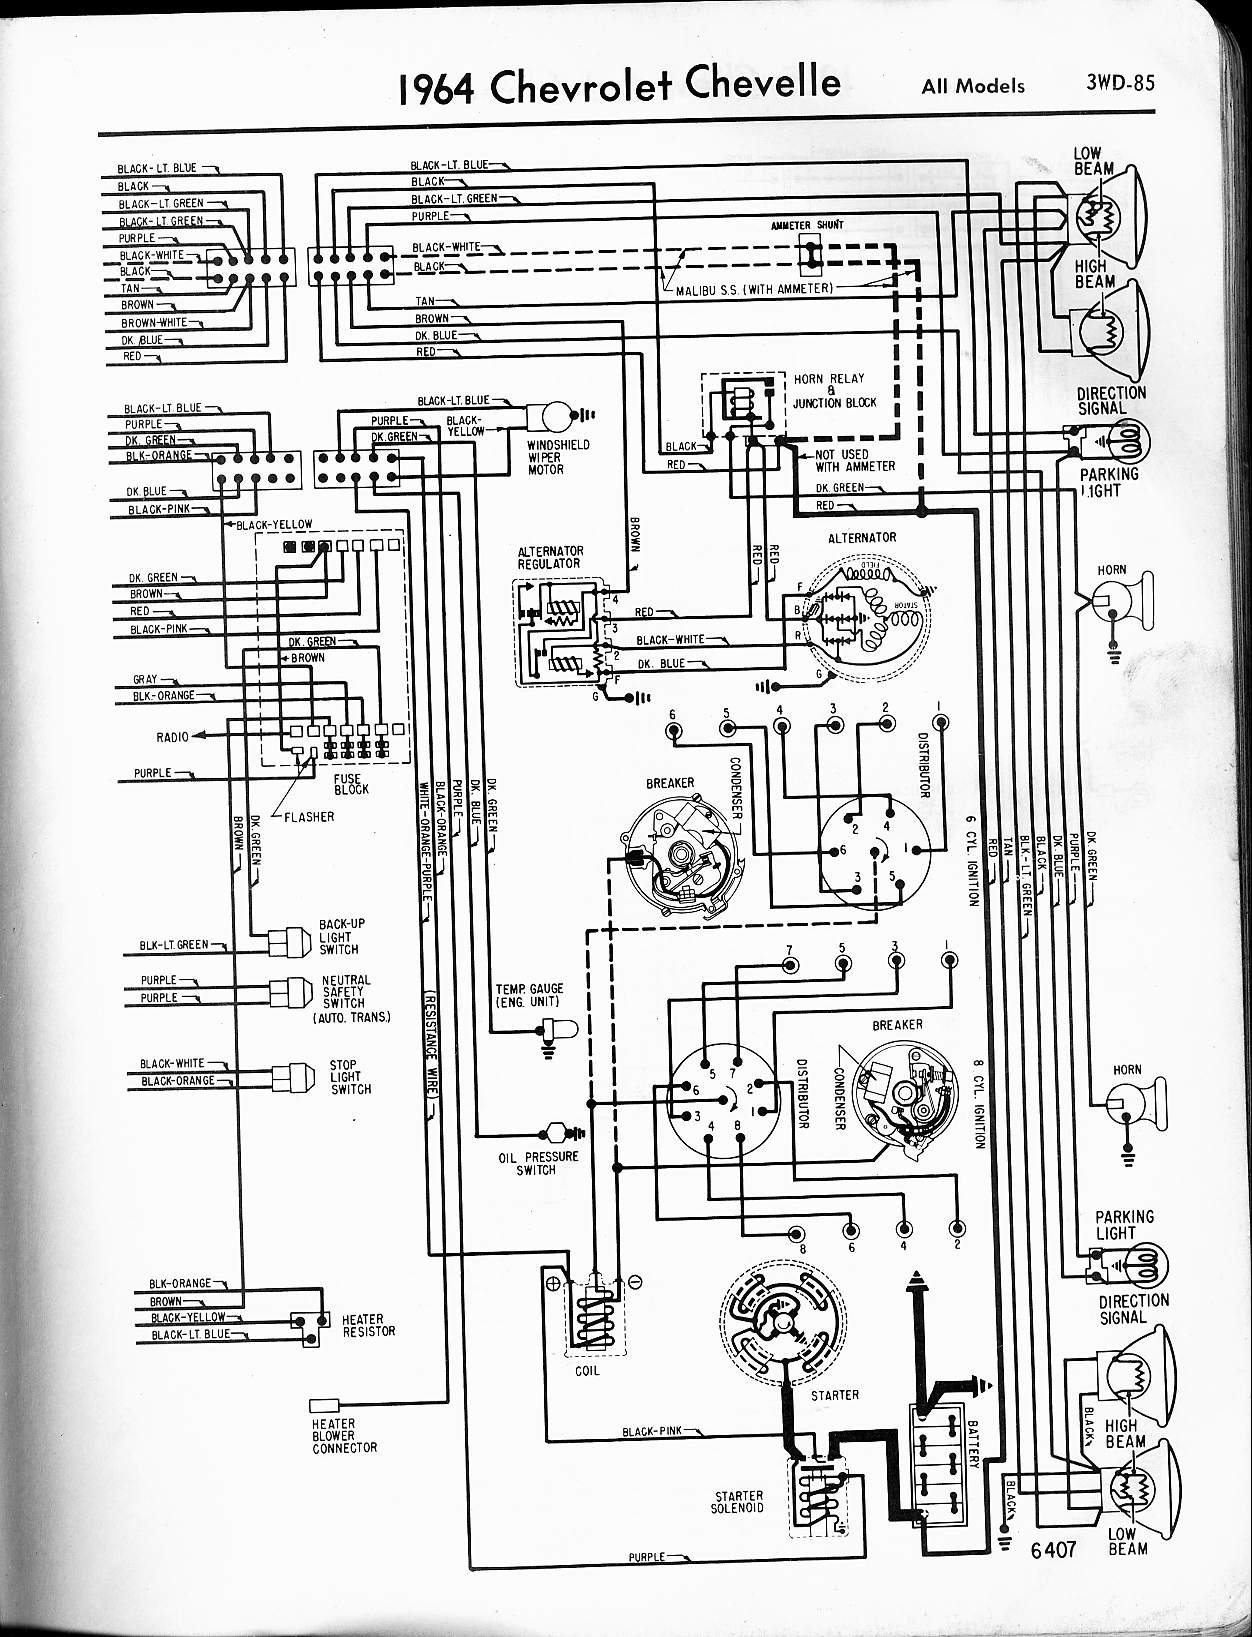 MWireChev64_3WD 085 chevy diagrams 1966 chevelle wiring diagram at creativeand.co